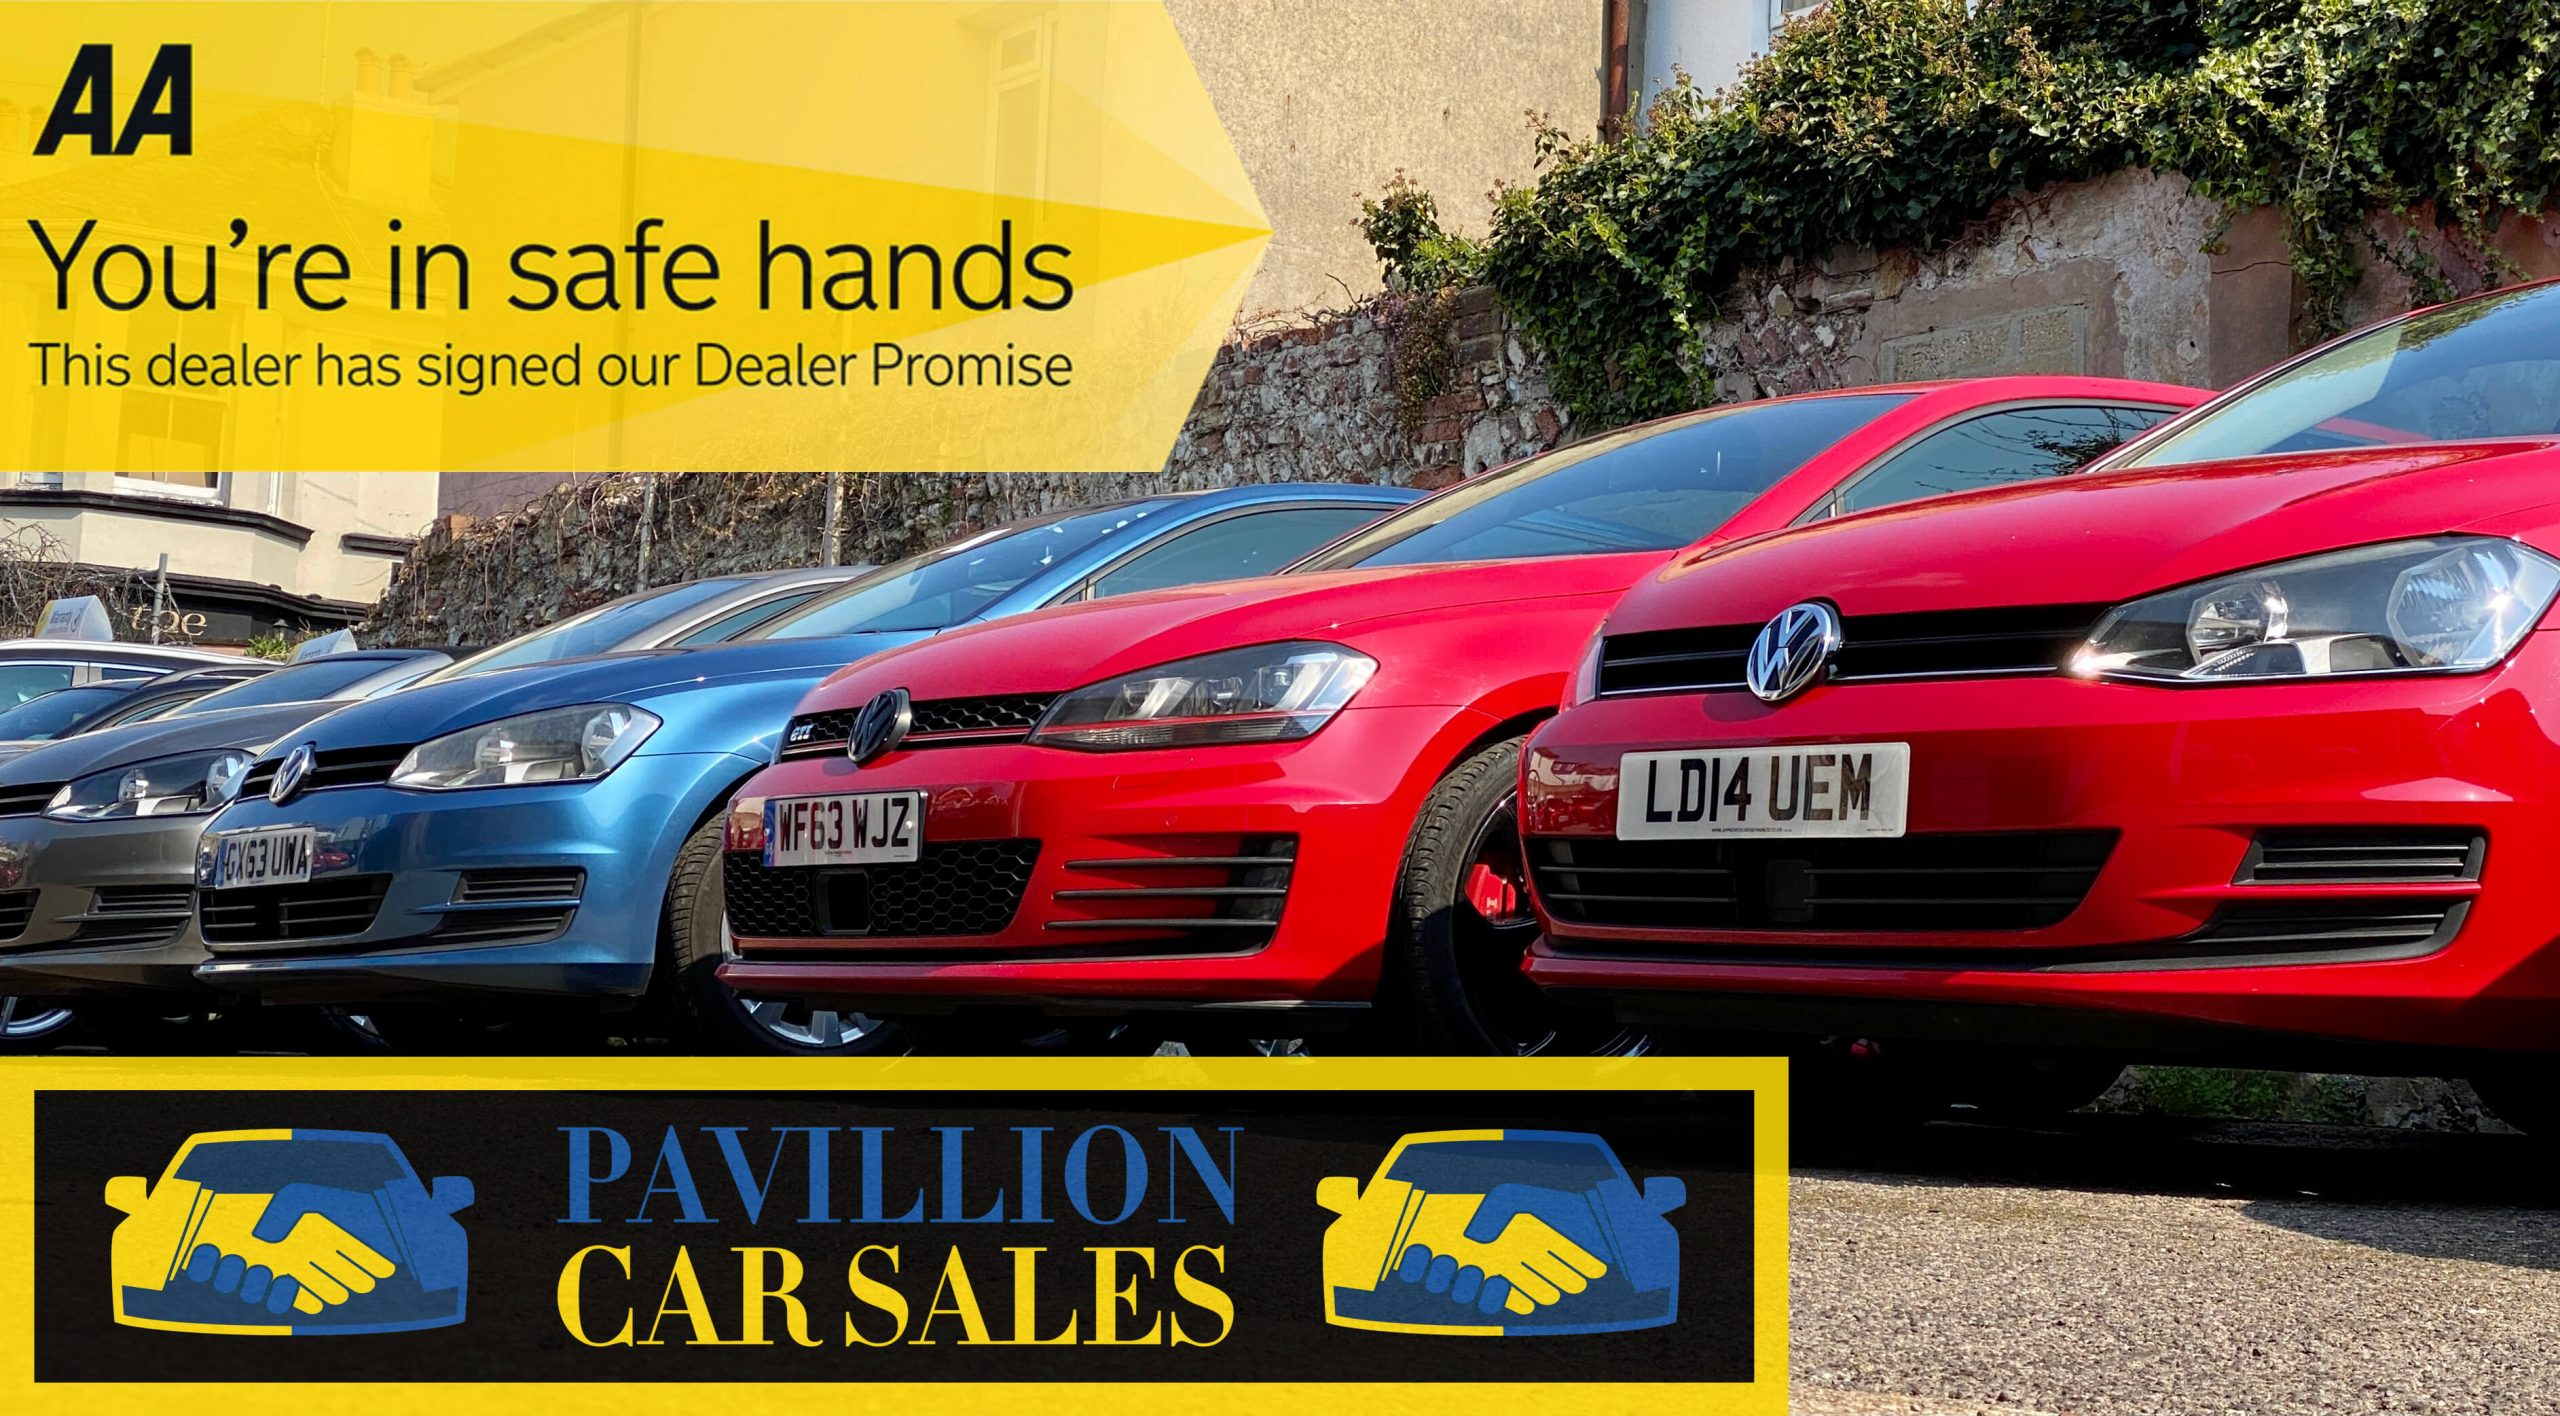 Pavillion Car Sales (AA APPROVED DEALERS) offer great prices on second-hand cars. Based in Brighton, we pride ourselves on offering a fantastic range of used cars to suit every need. Since 2010 we have been a family-run business looking to provide our customers with quality used cars at the best price possible! We do this by carrying out a 54-Point inspection, offering no-hassle Warranty, No extra fees & excellent aftercare with all of our cars. We do our best to offer our customers a pressure-free and friendly sales environment so we can help you find the car that best suits your own personal needs. Our services include: Used Vehicle Sales, Vehicles Wanted, Part Exchange and Vehicle financing. Cars up to 8 years old come with AA Warranty and 12 months AA breakdown cover included in the price. All AA Warranties can also be extended at an additional cost. Please contact us for more information.